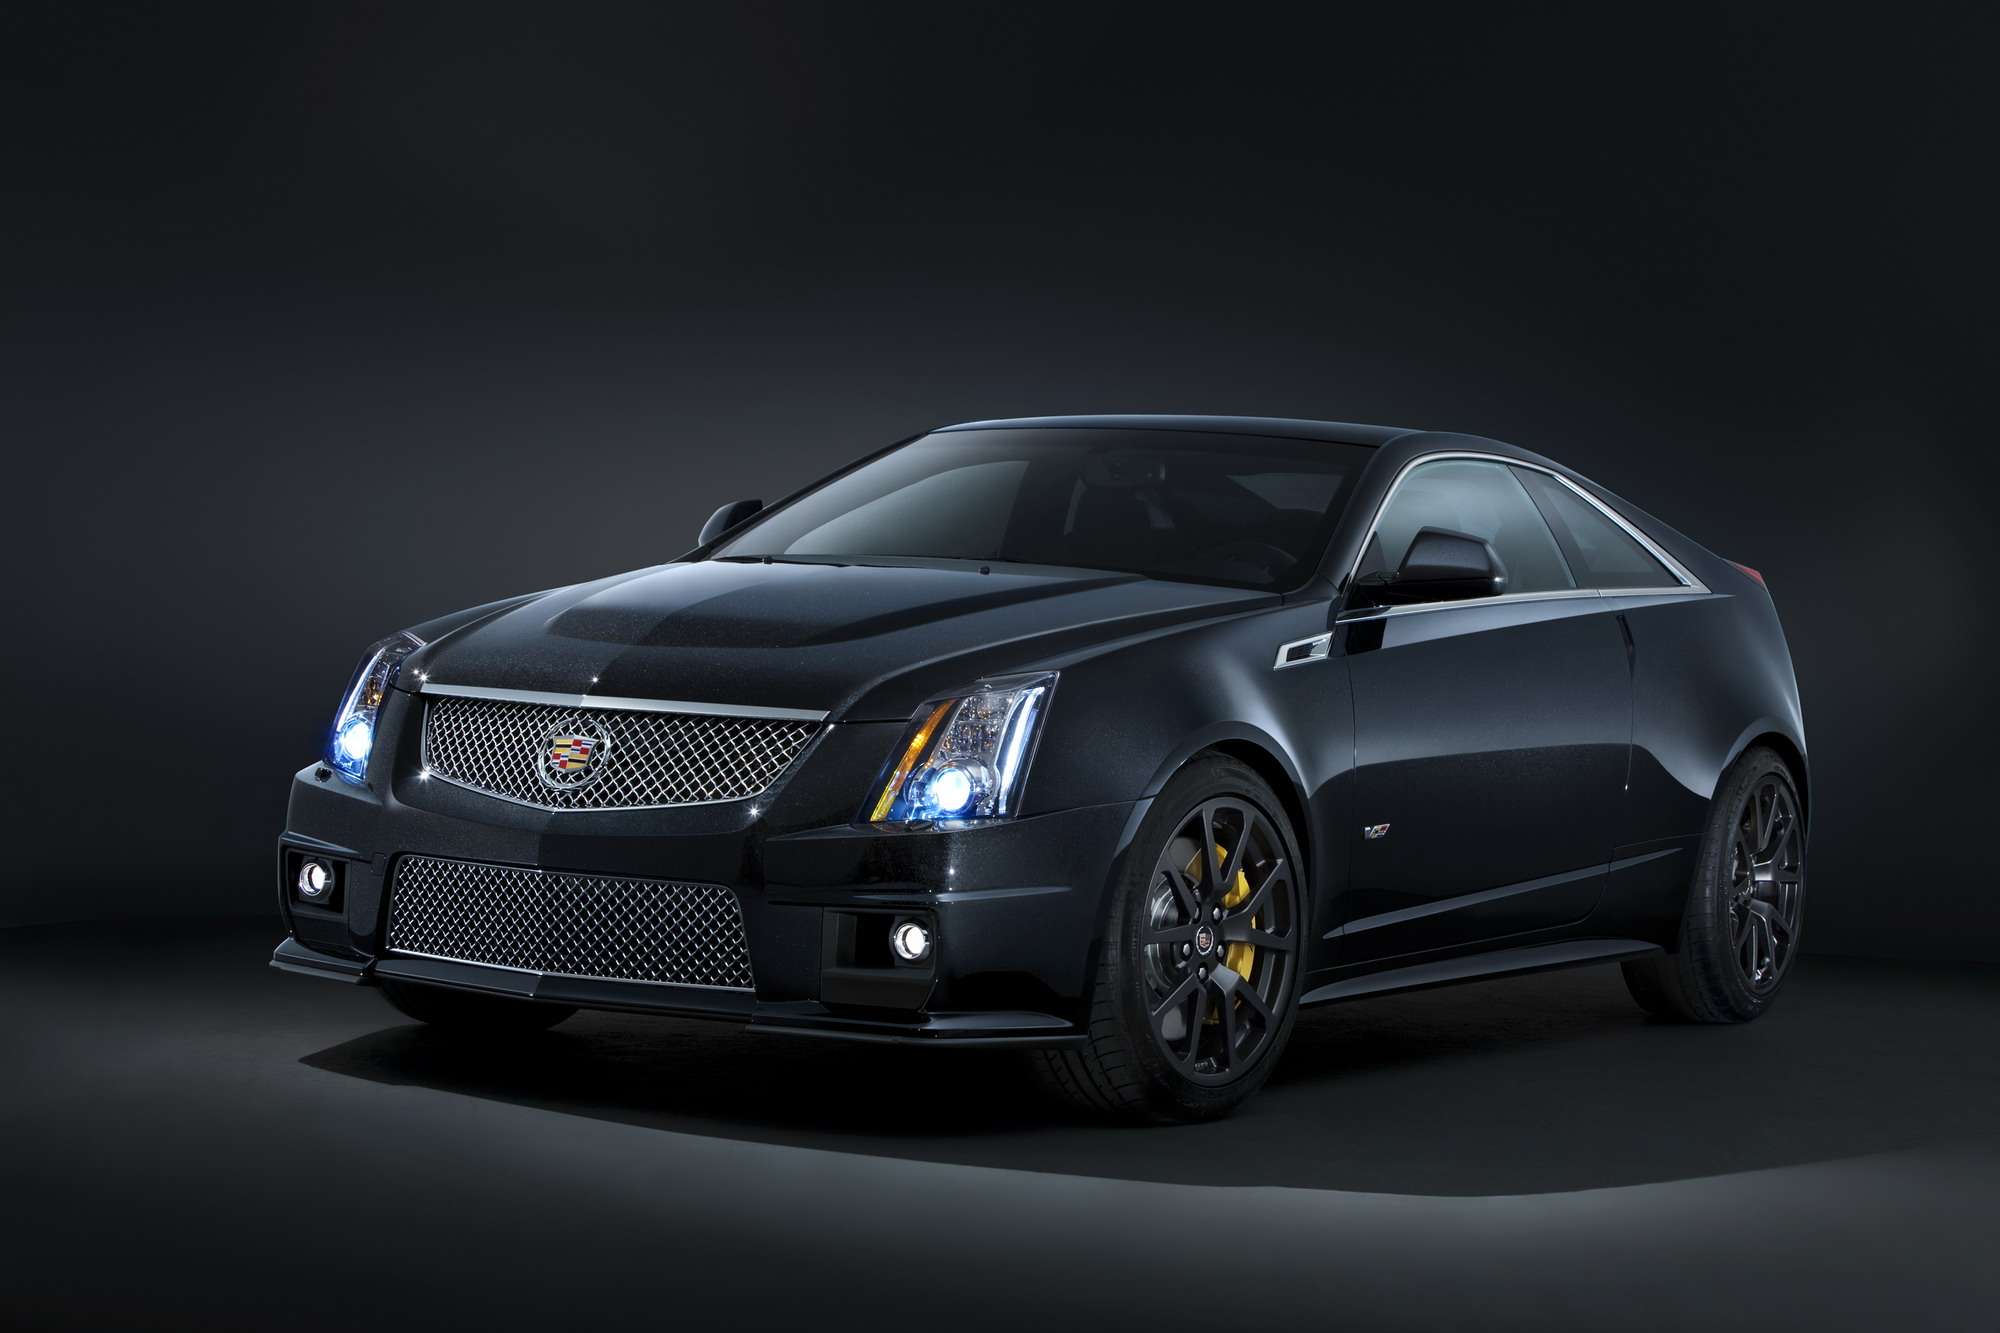 v cadillac exterior overview prices the door cts coupe angular view front specs for photos car sale connection ratings review and l